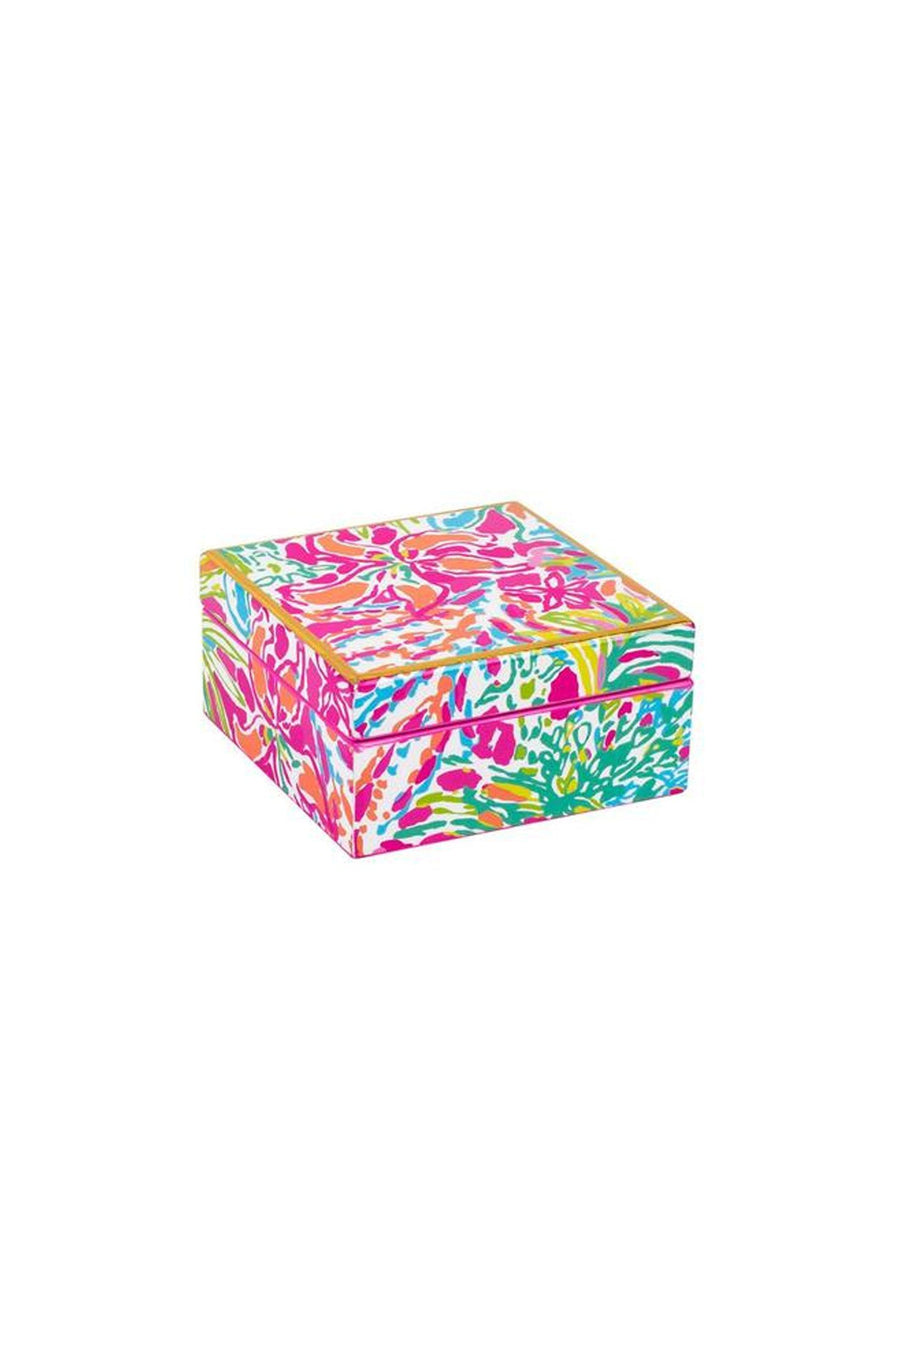 Lilly Pulitzer Lacquer Box, accessories, Lilly Pulitzer, - Sunny and Southern,